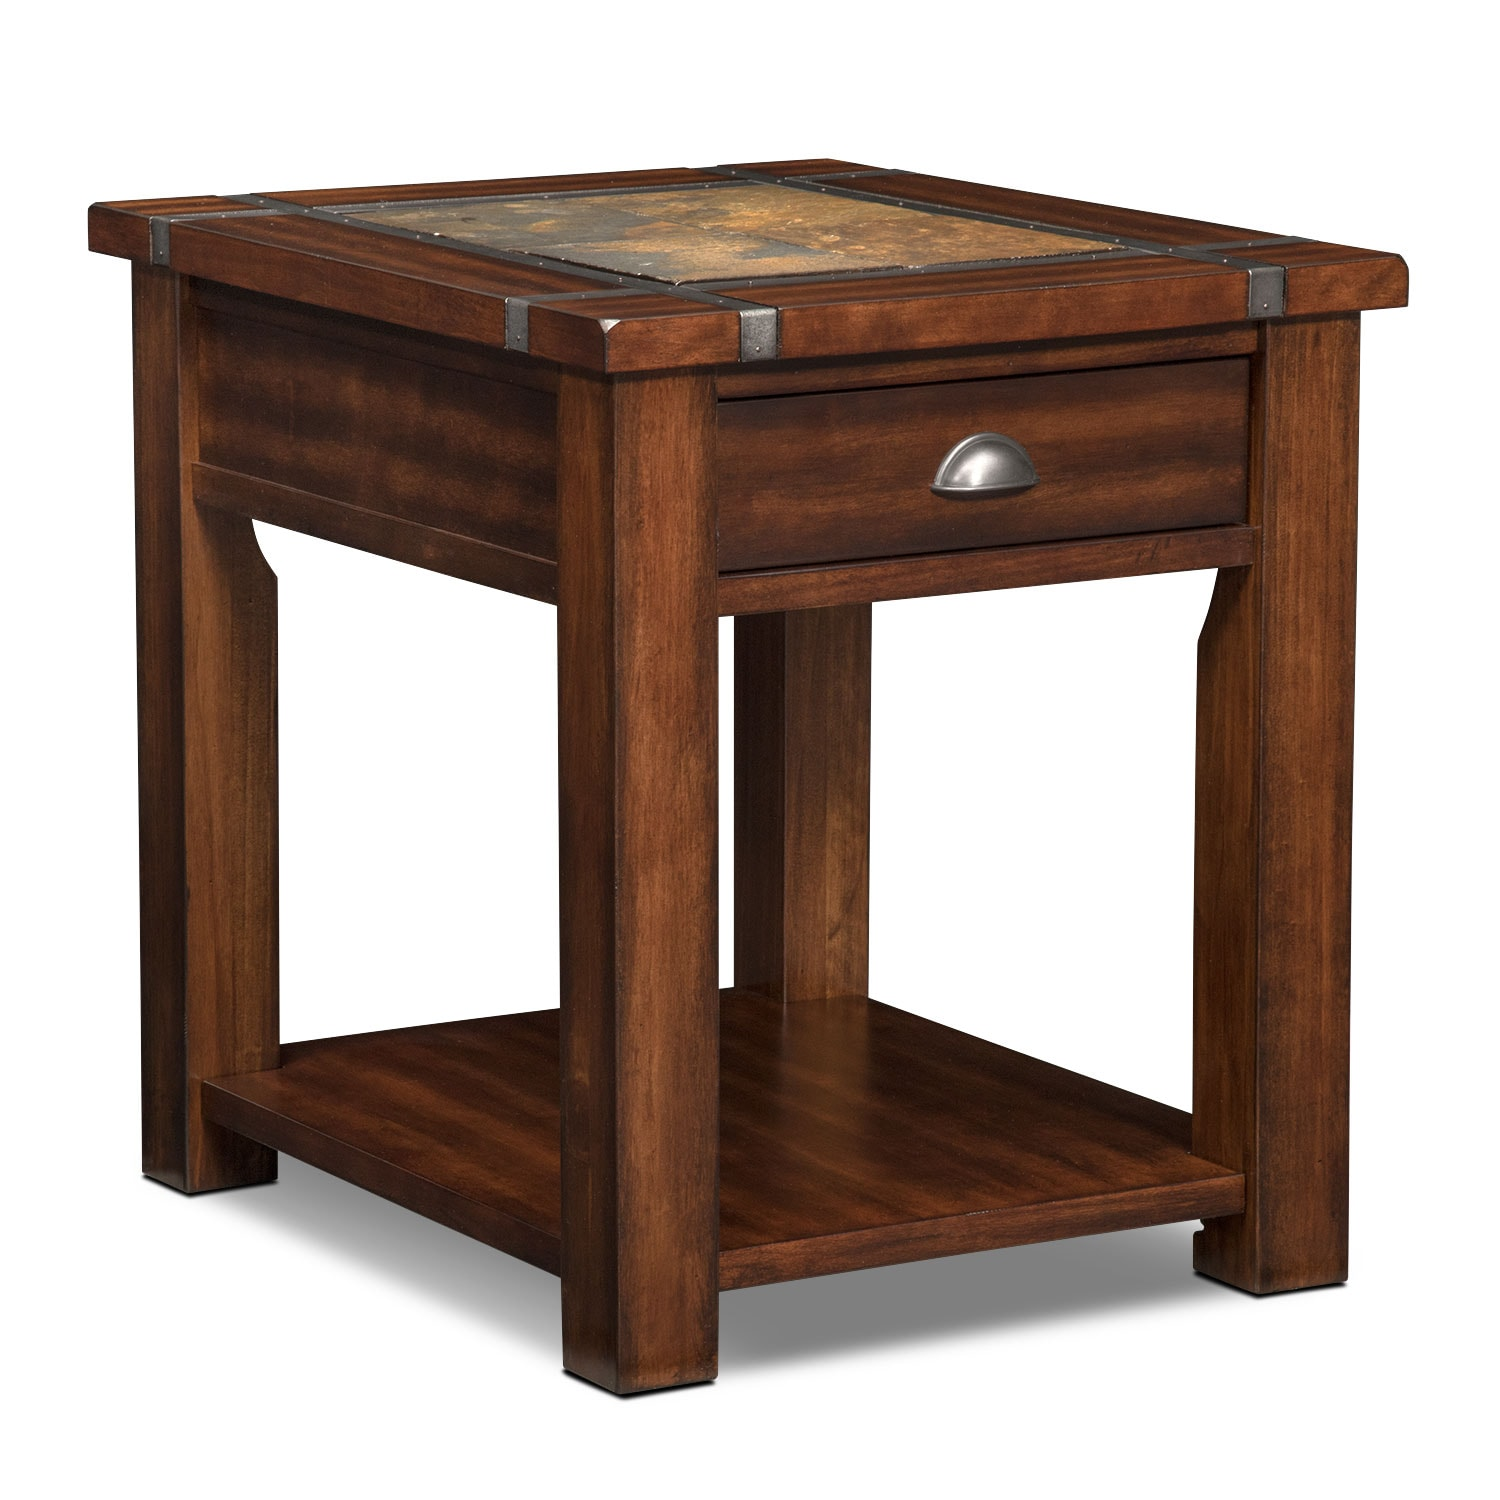 Living Room Side Tables For Sale Slate Ridge End Table Cherry Value City Furniture